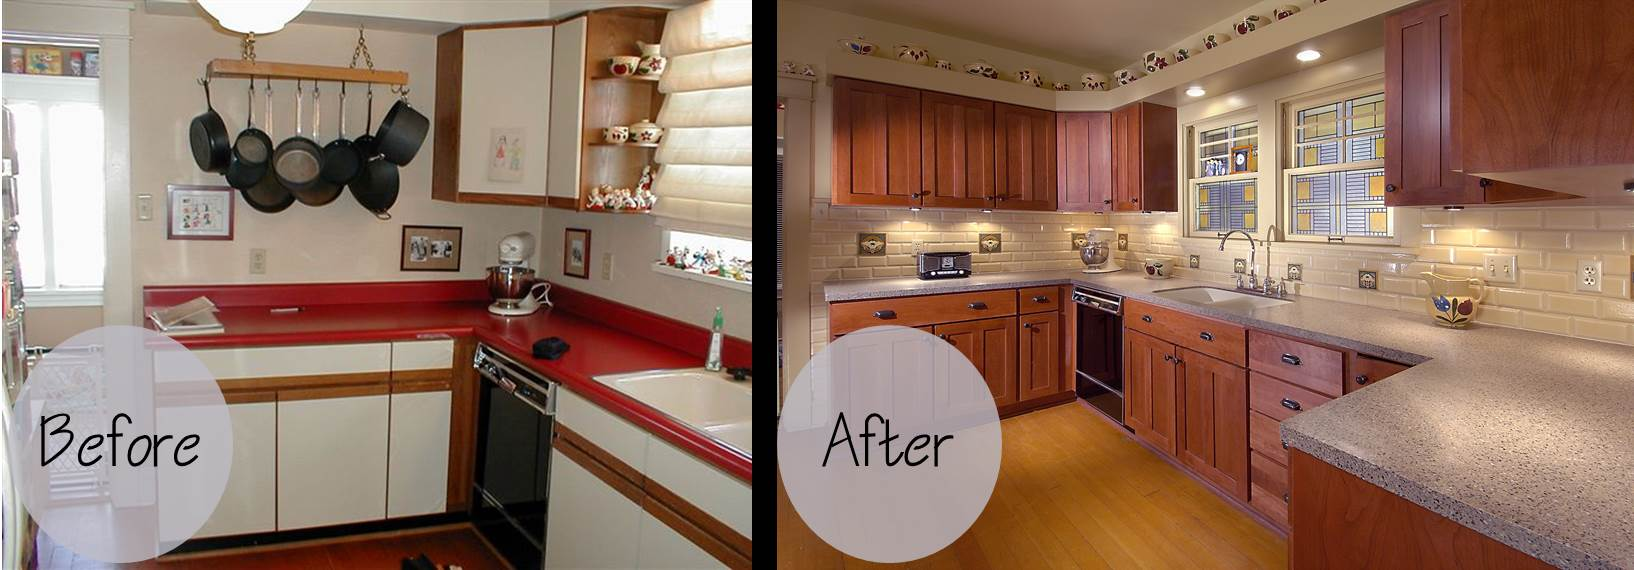 resurfacing kitchen cabinets before and after cabinet refacing bucks county pa kitchen cabinet 25548